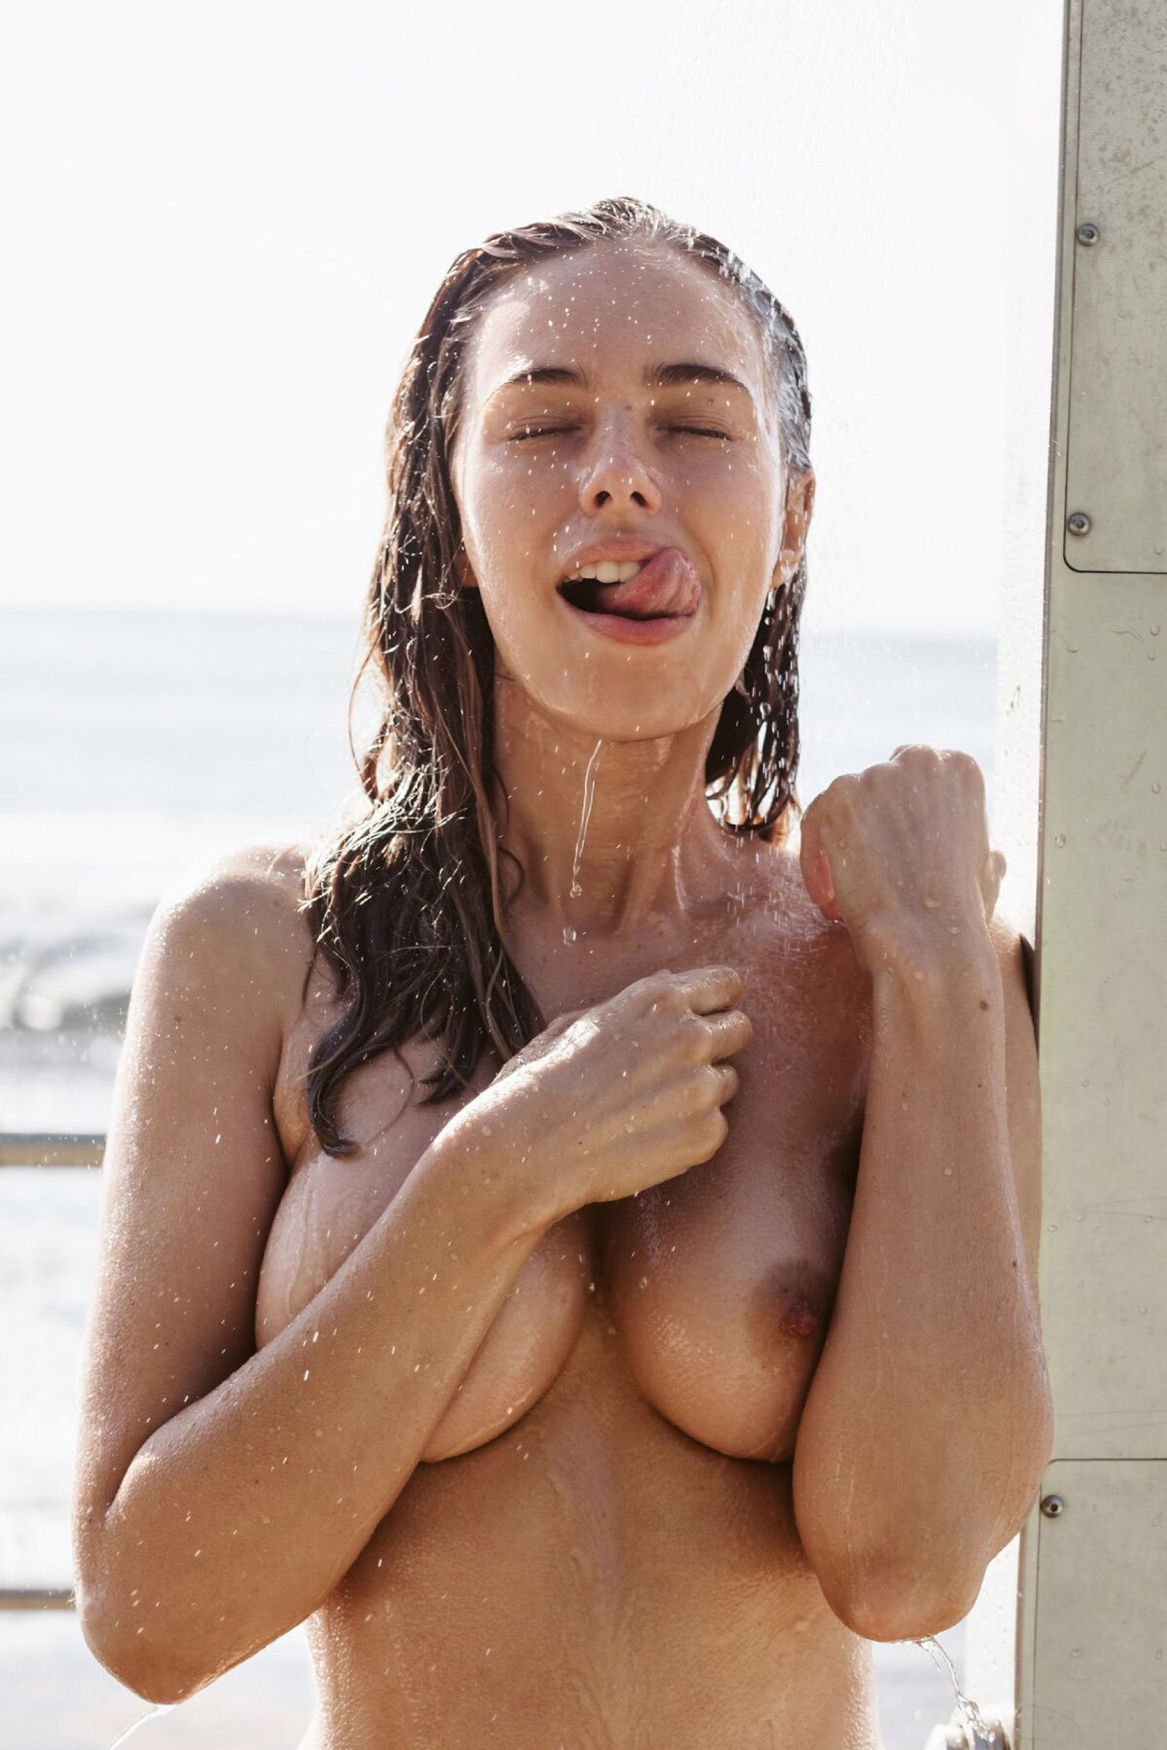 Brunette enjoying a good shower